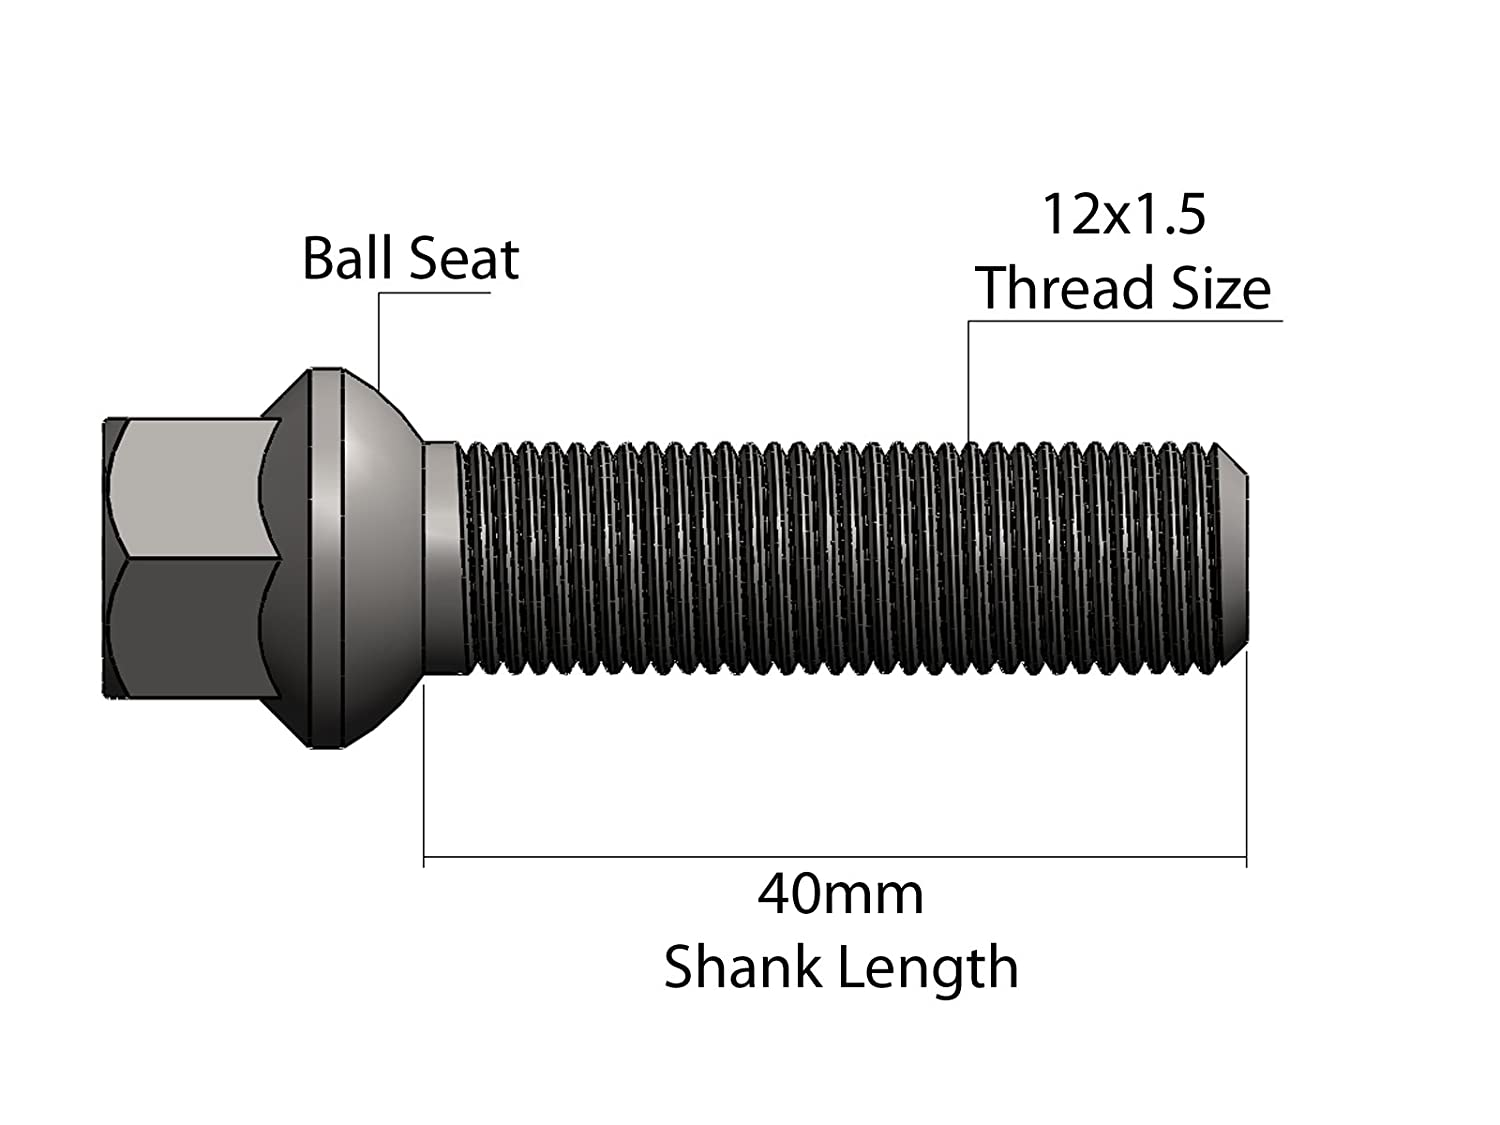 - C230 C240 C280 C320 E320 E420 E430 AMG SLK CLK Fits many Mercedes Benz Locking Silver Lug Bolts 12x1.5 20 40mm Shank Length, Ball Seat Check Description for exact years Includes Socket Key